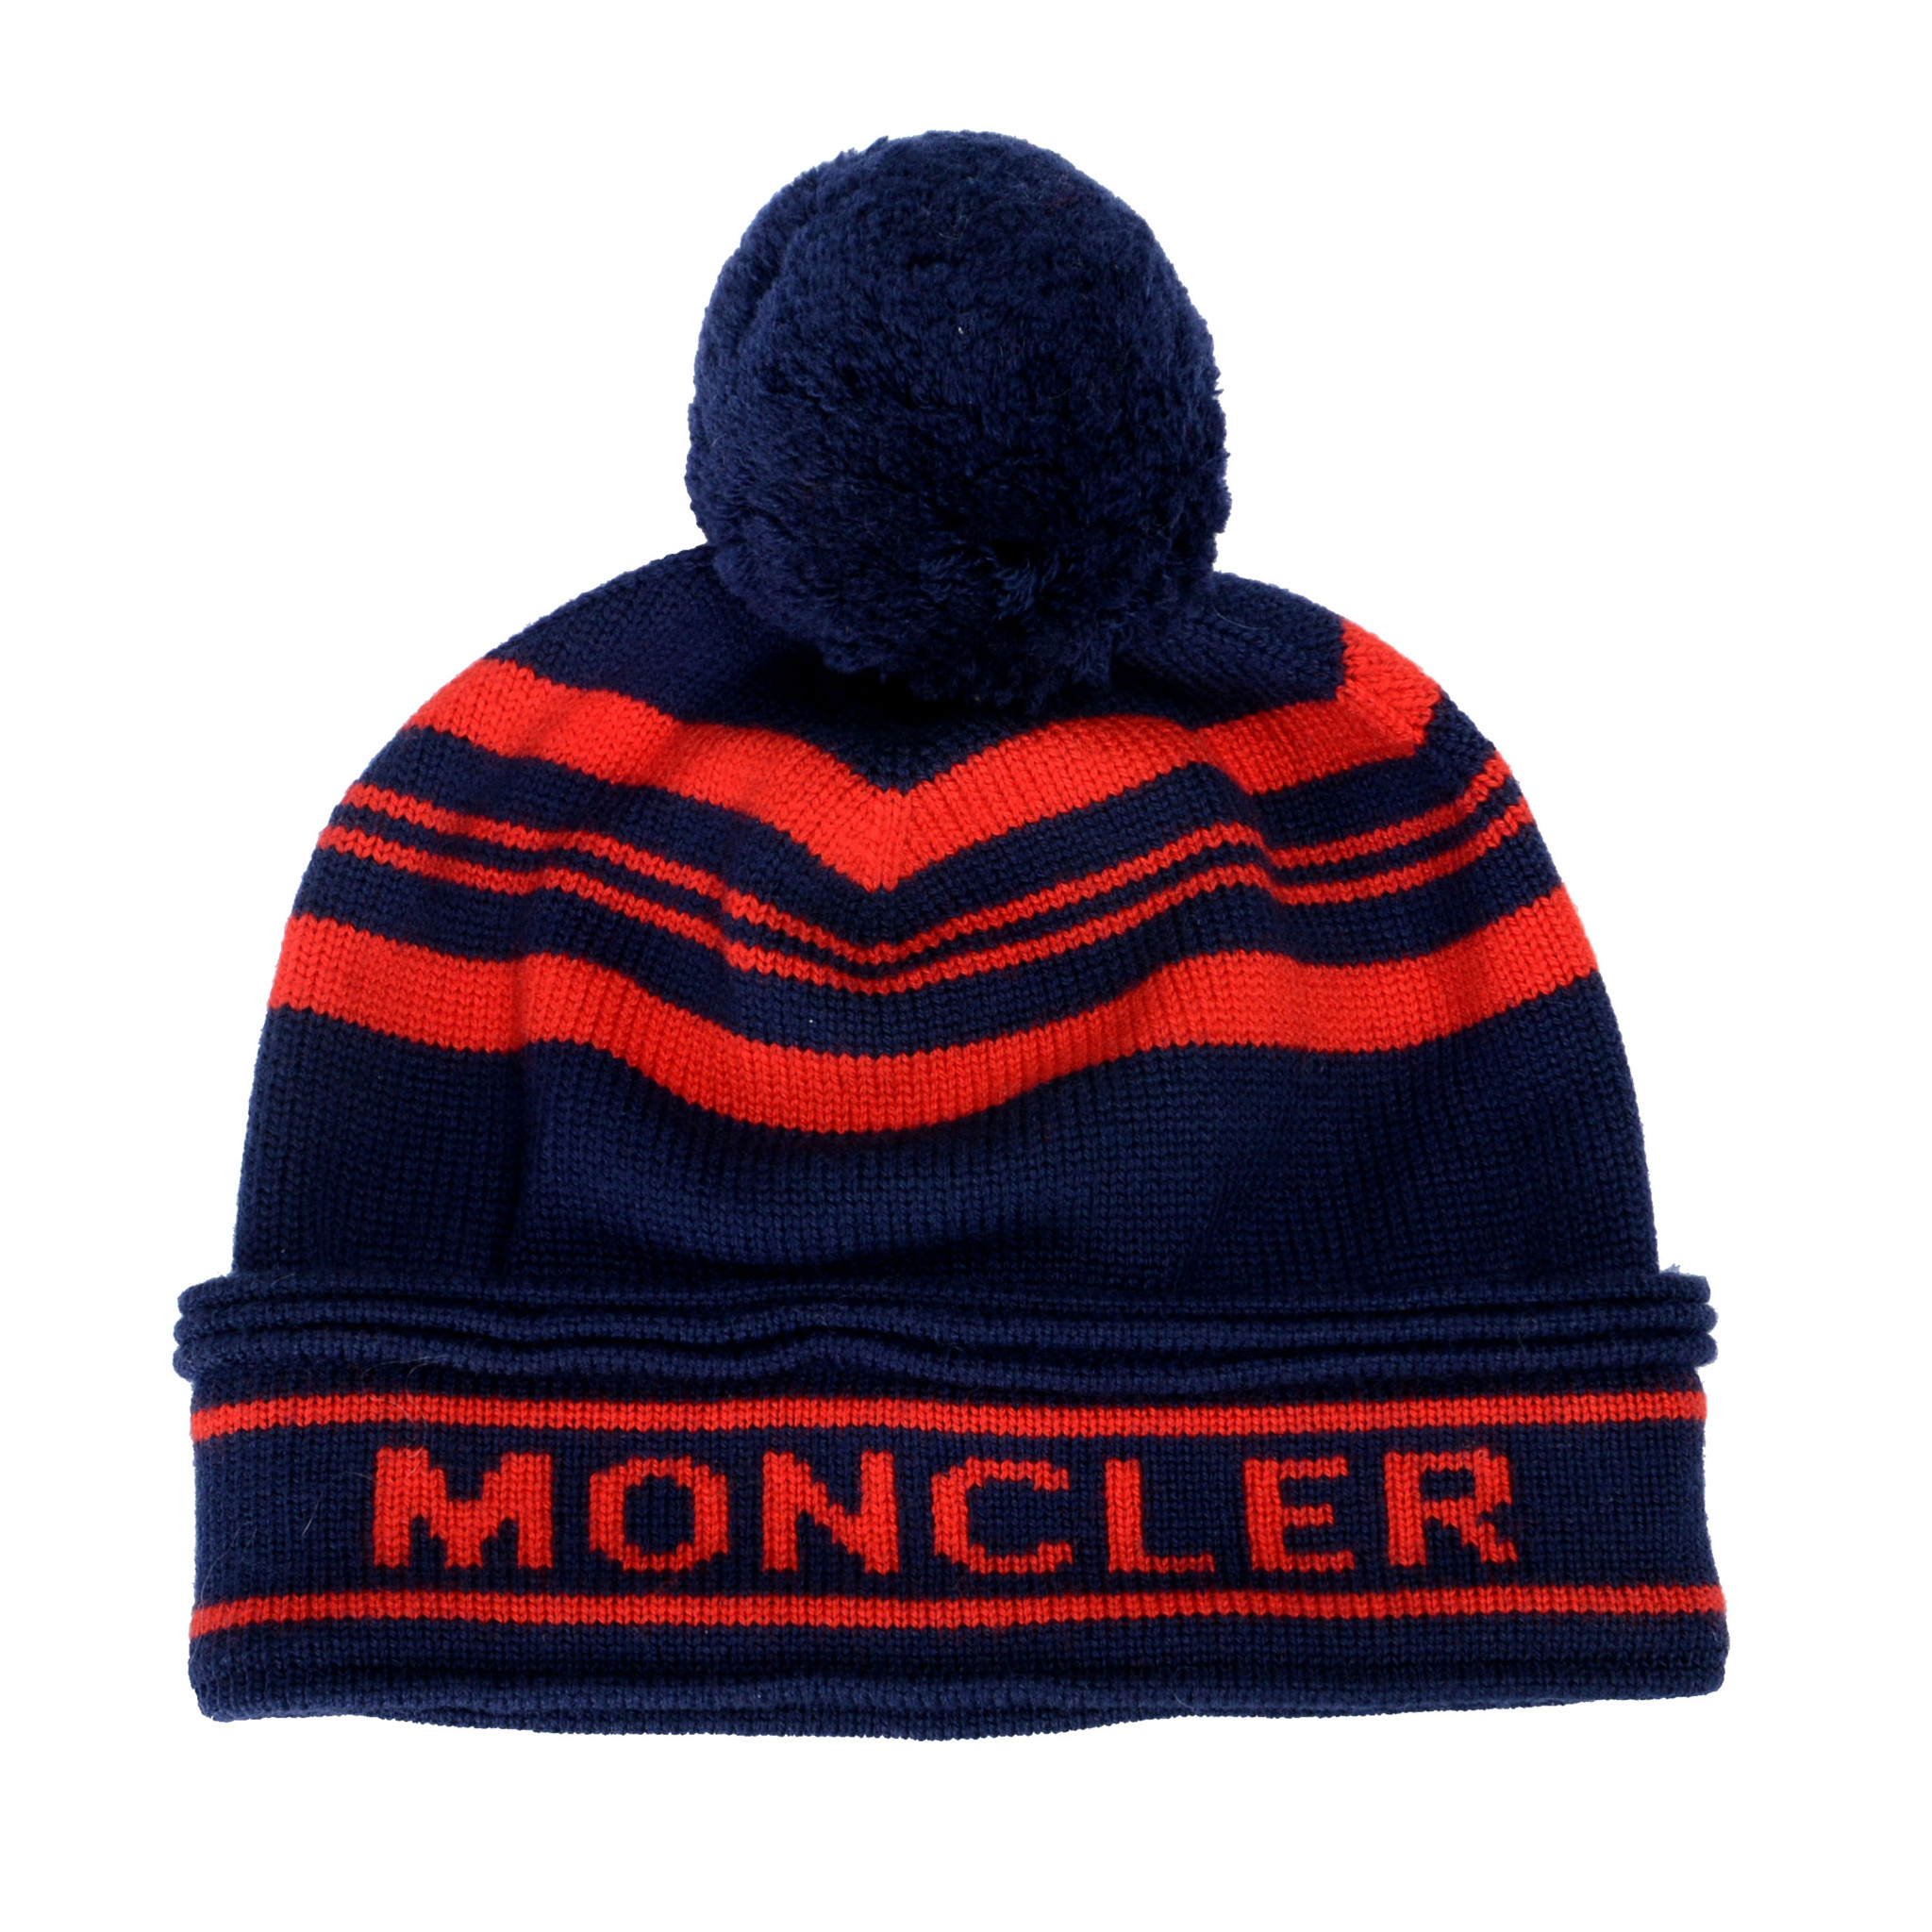 7d4fdd4b3 Details about Moncler Unisex Multi-Color 100% Wool Hat With Pom Pom